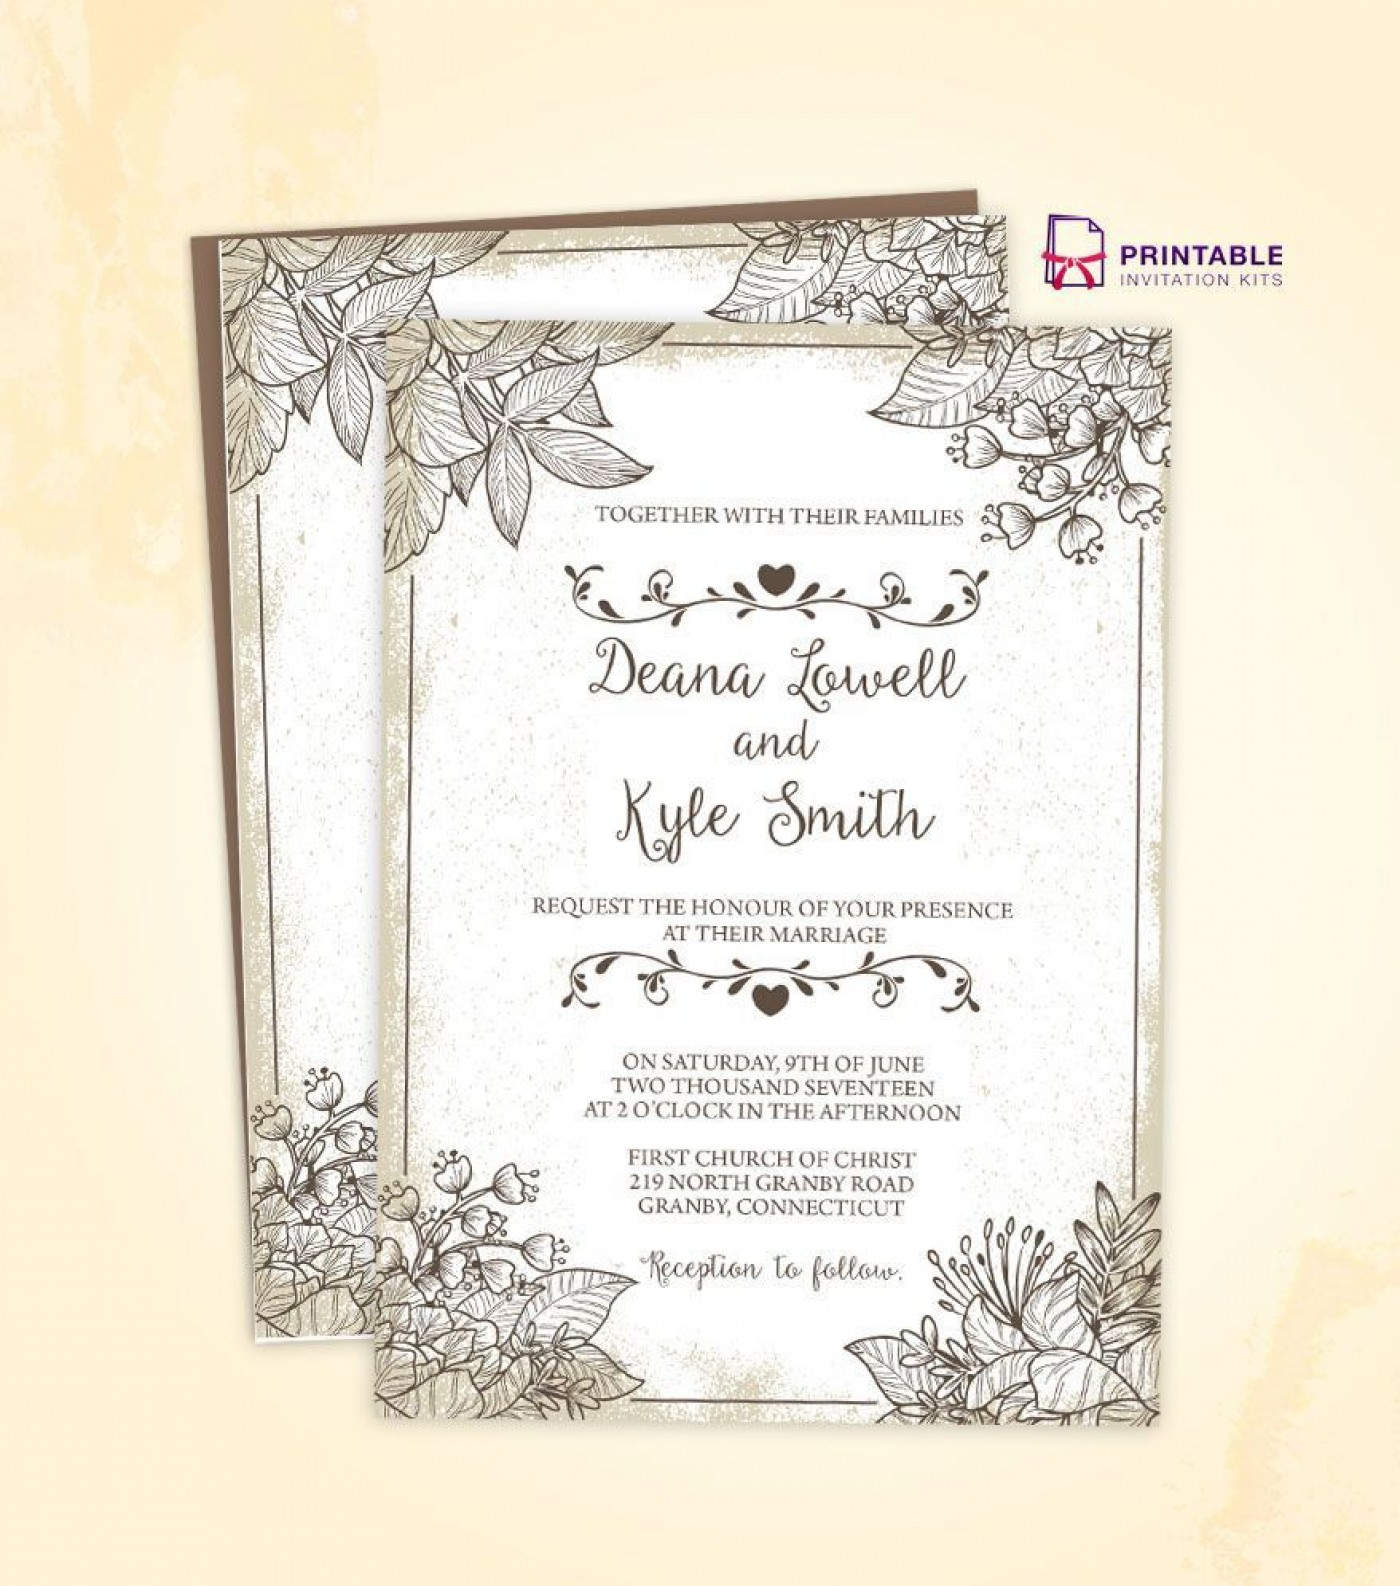 000 Wondrou Free Download Wedding Invitation Template Example  Marathi Video Maker Software Editable Rustic For Word1400